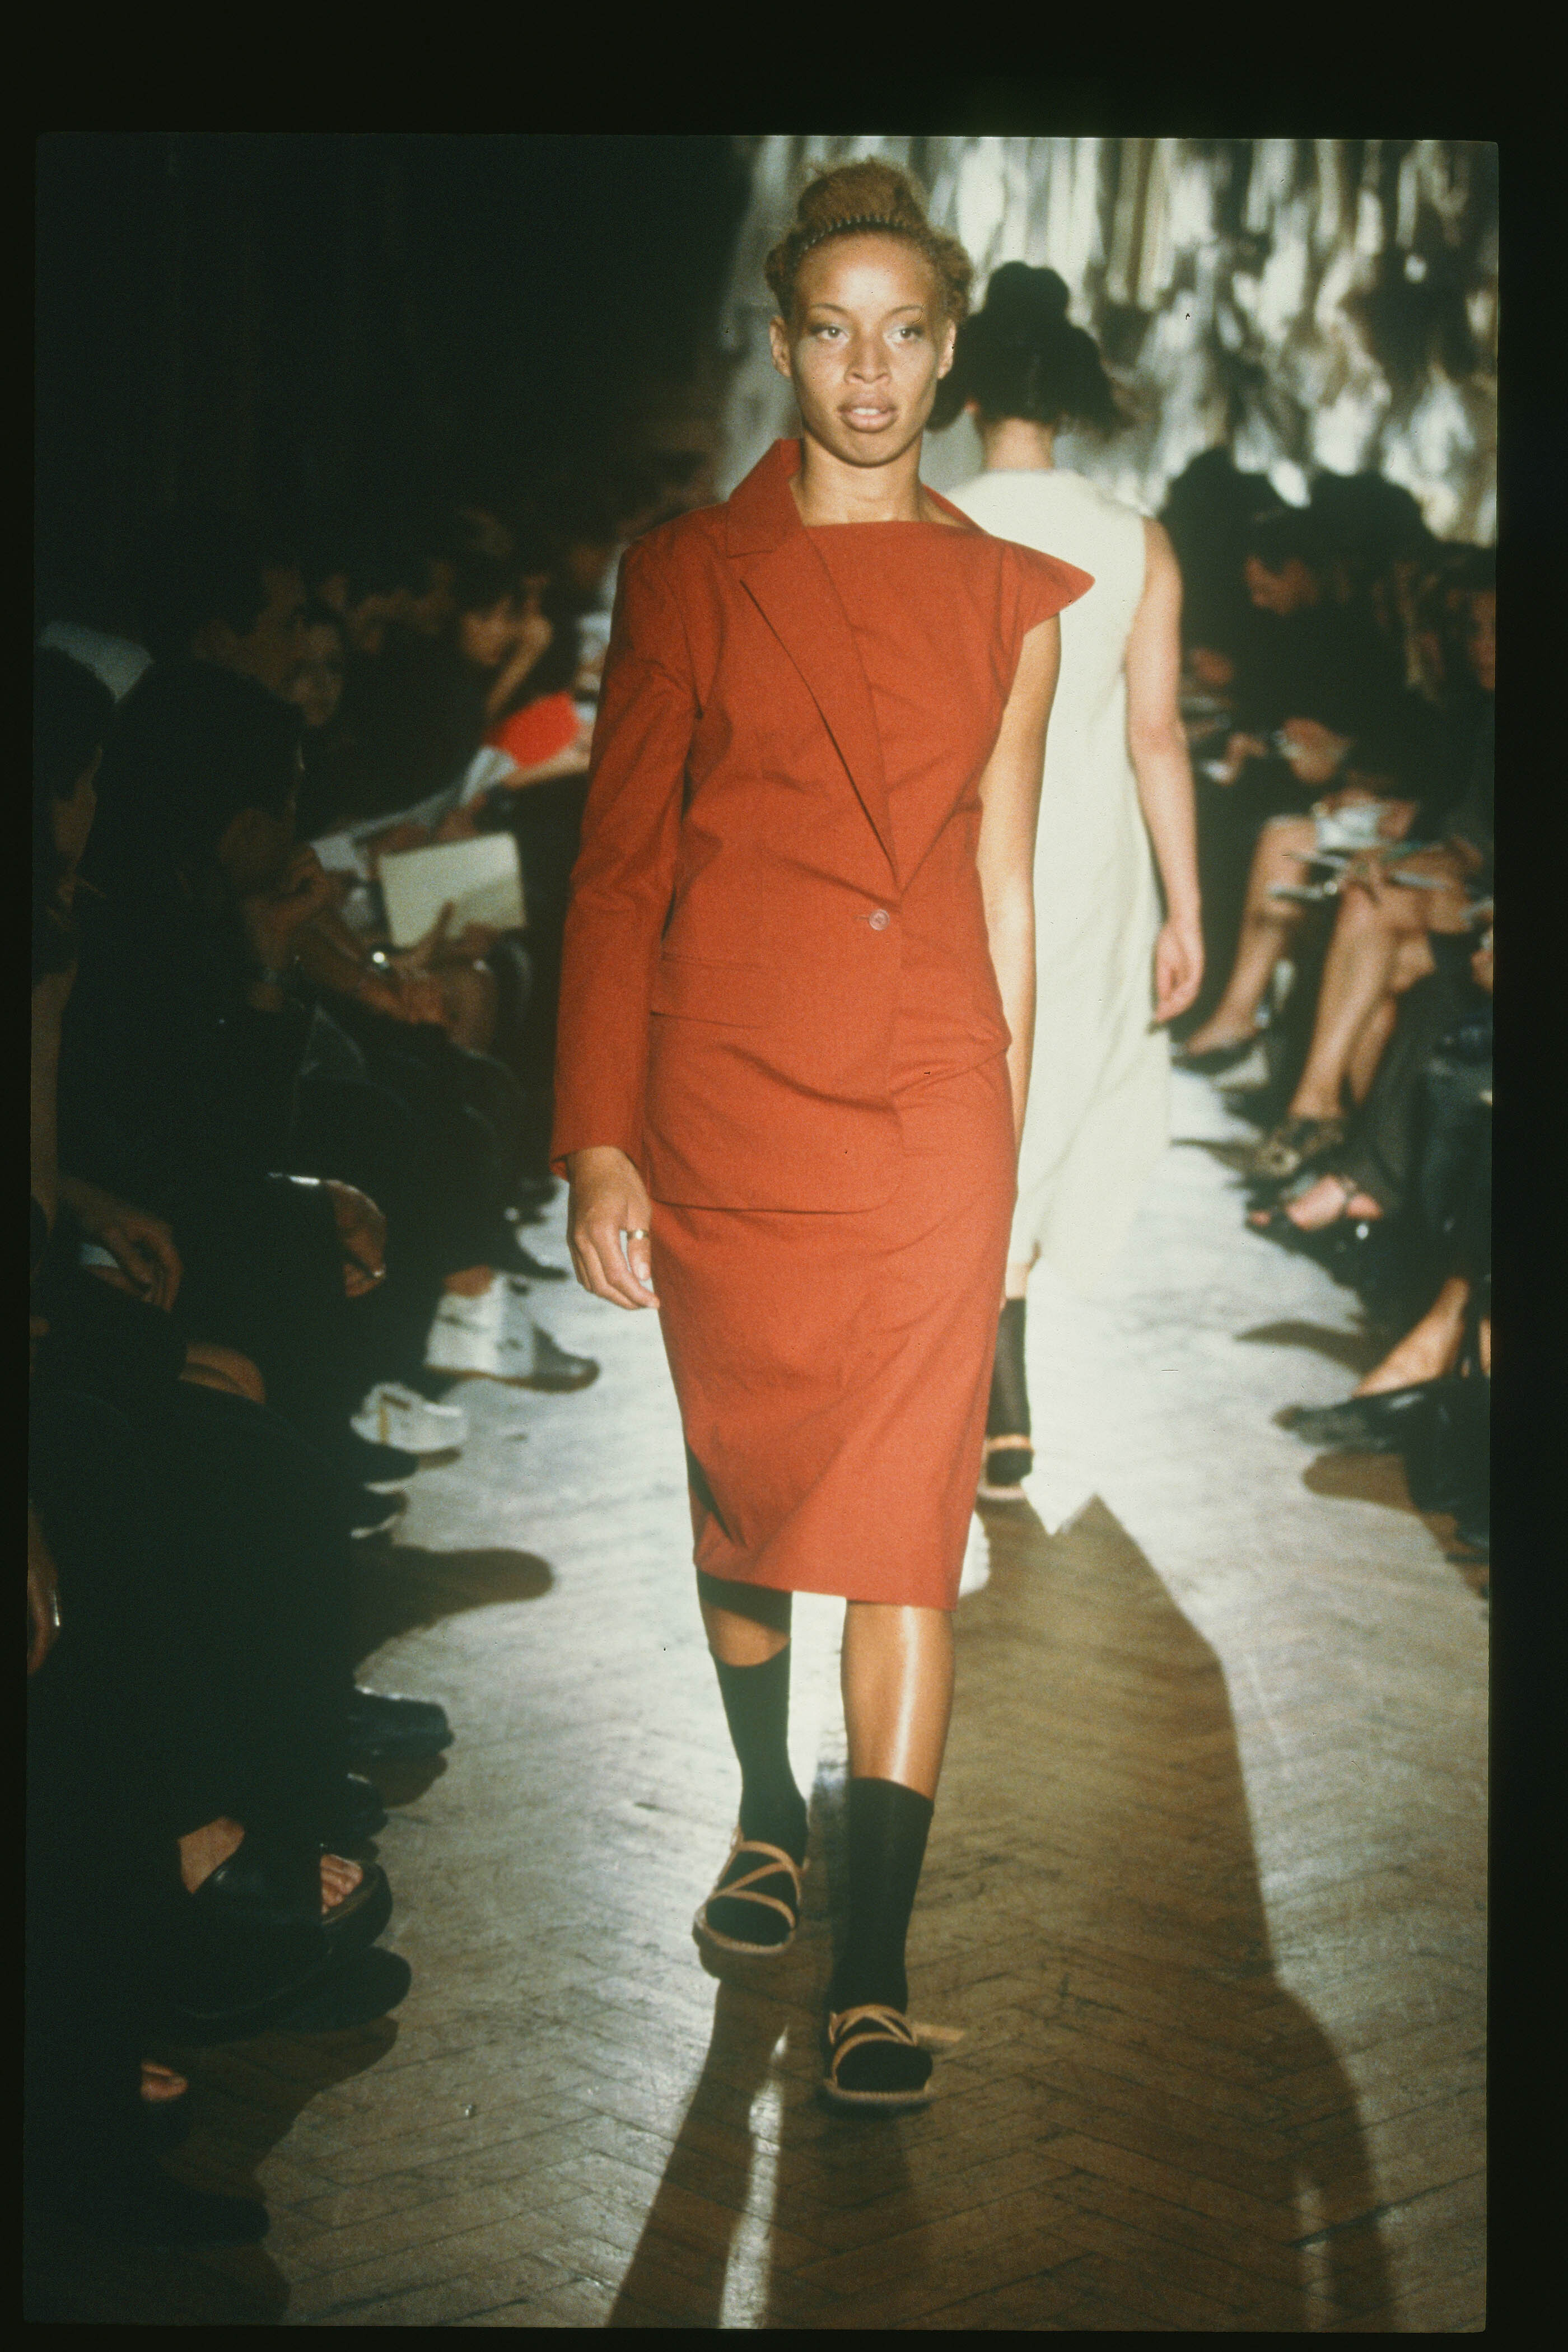 Joe Casely-Hayford SS99 modelled by Stacey McKenzie